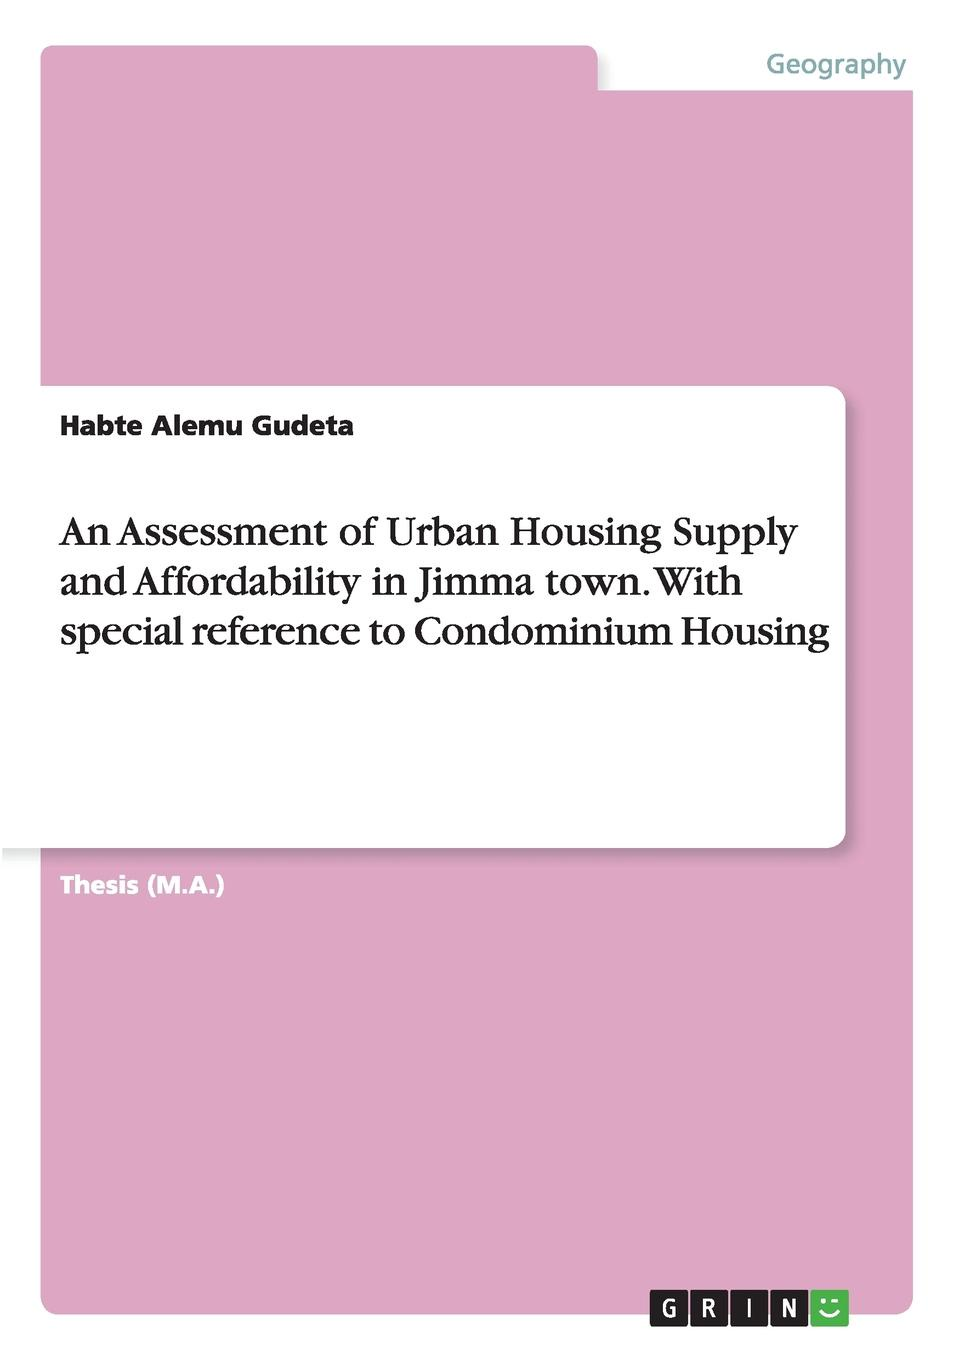 Habte Alemu Gudeta An Assessment of Urban Housing Supply and Affordability in Jimma town. With special reference to Condominium Housing projector lamp bulb tlplf6 tlp lf6 for toshiba tlp 970f tlp 971f tlp 471f with housing